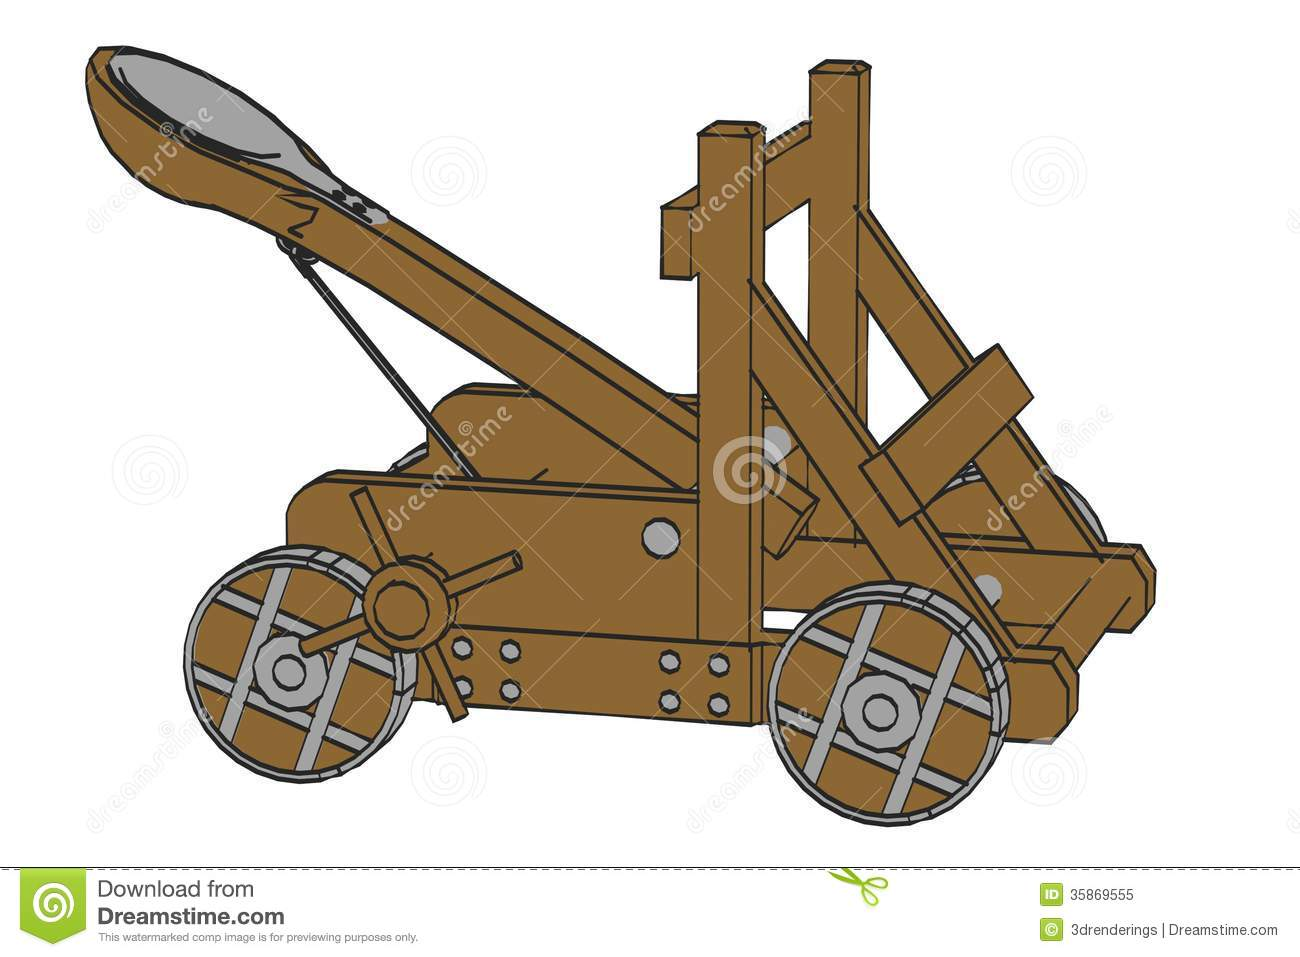 Catapult Clipart Group with 20+ items graphic library download